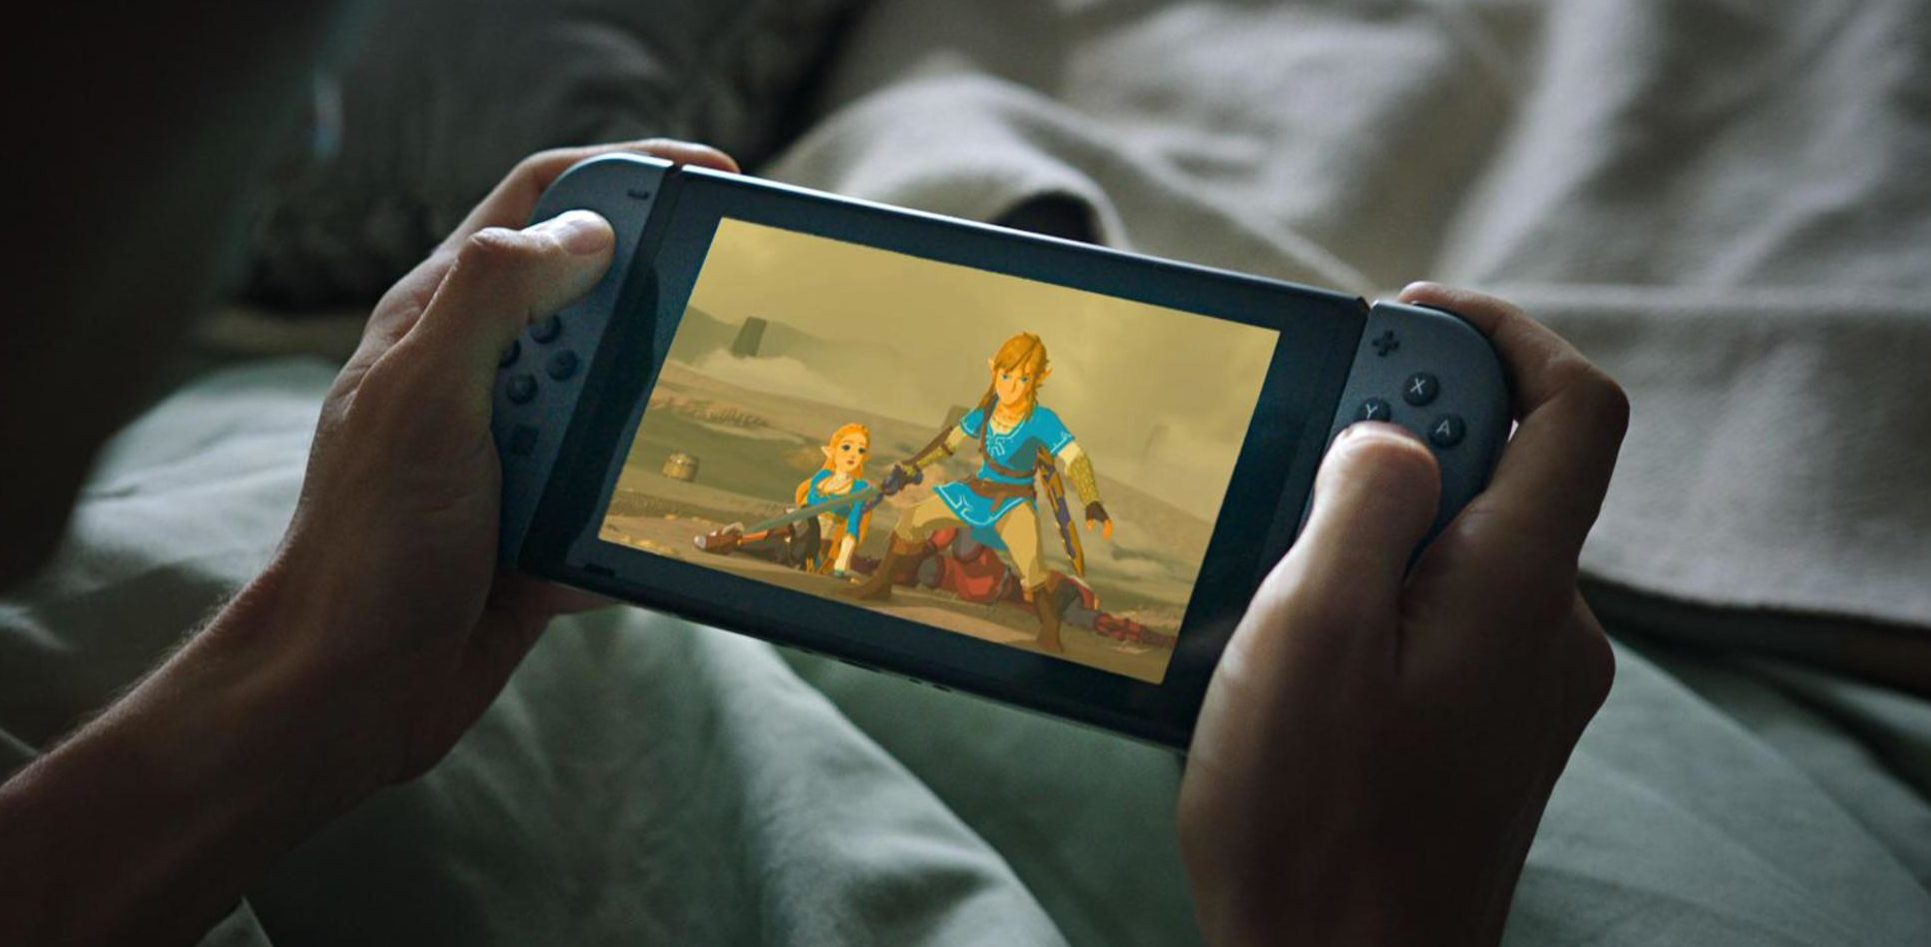 Nintendo says it has 'no plans' for a Switch price cut